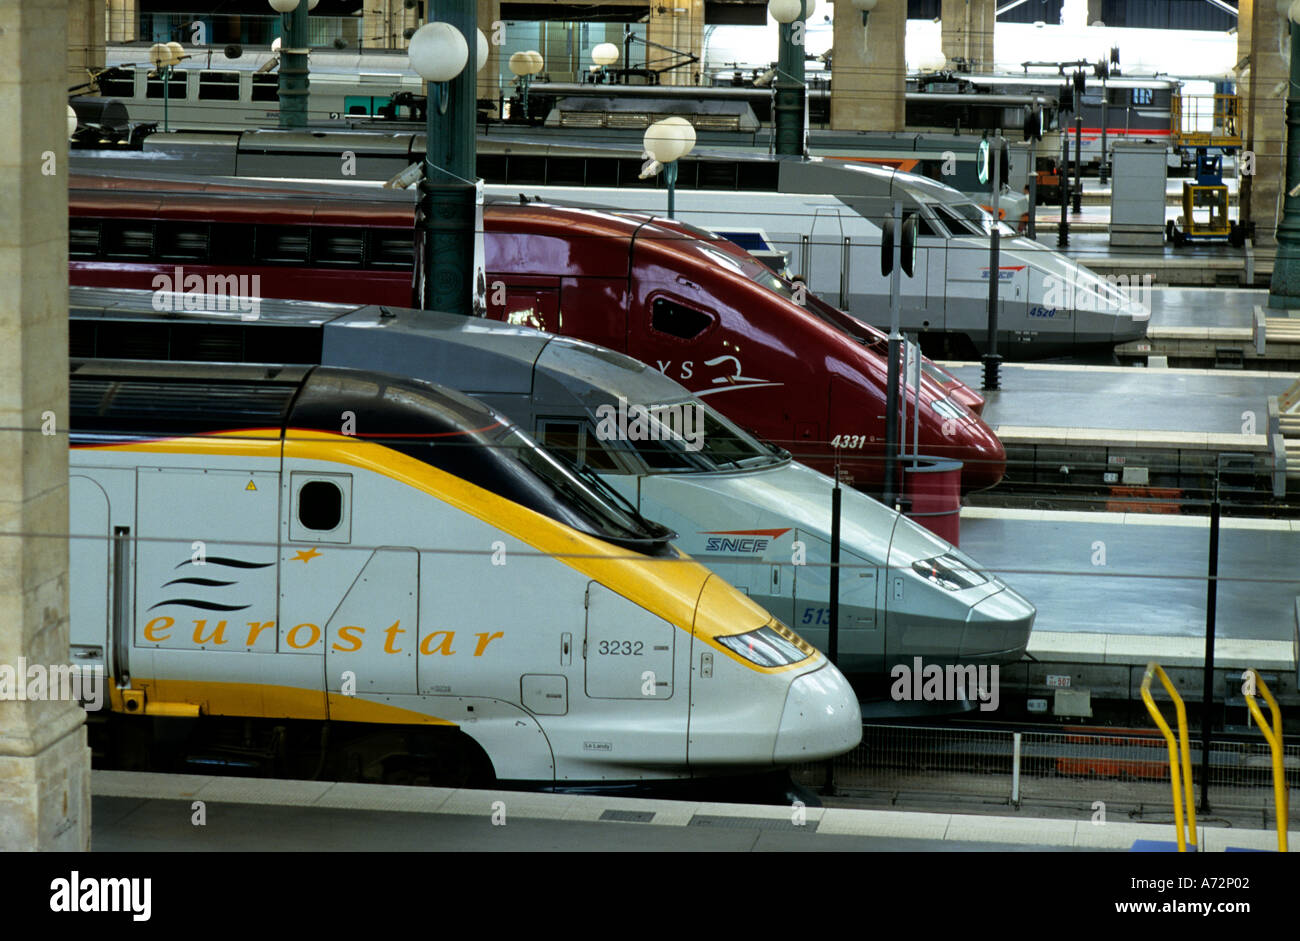 Paris Train Paris Trains Stock Photos Paris Trains Stock Images Alamy